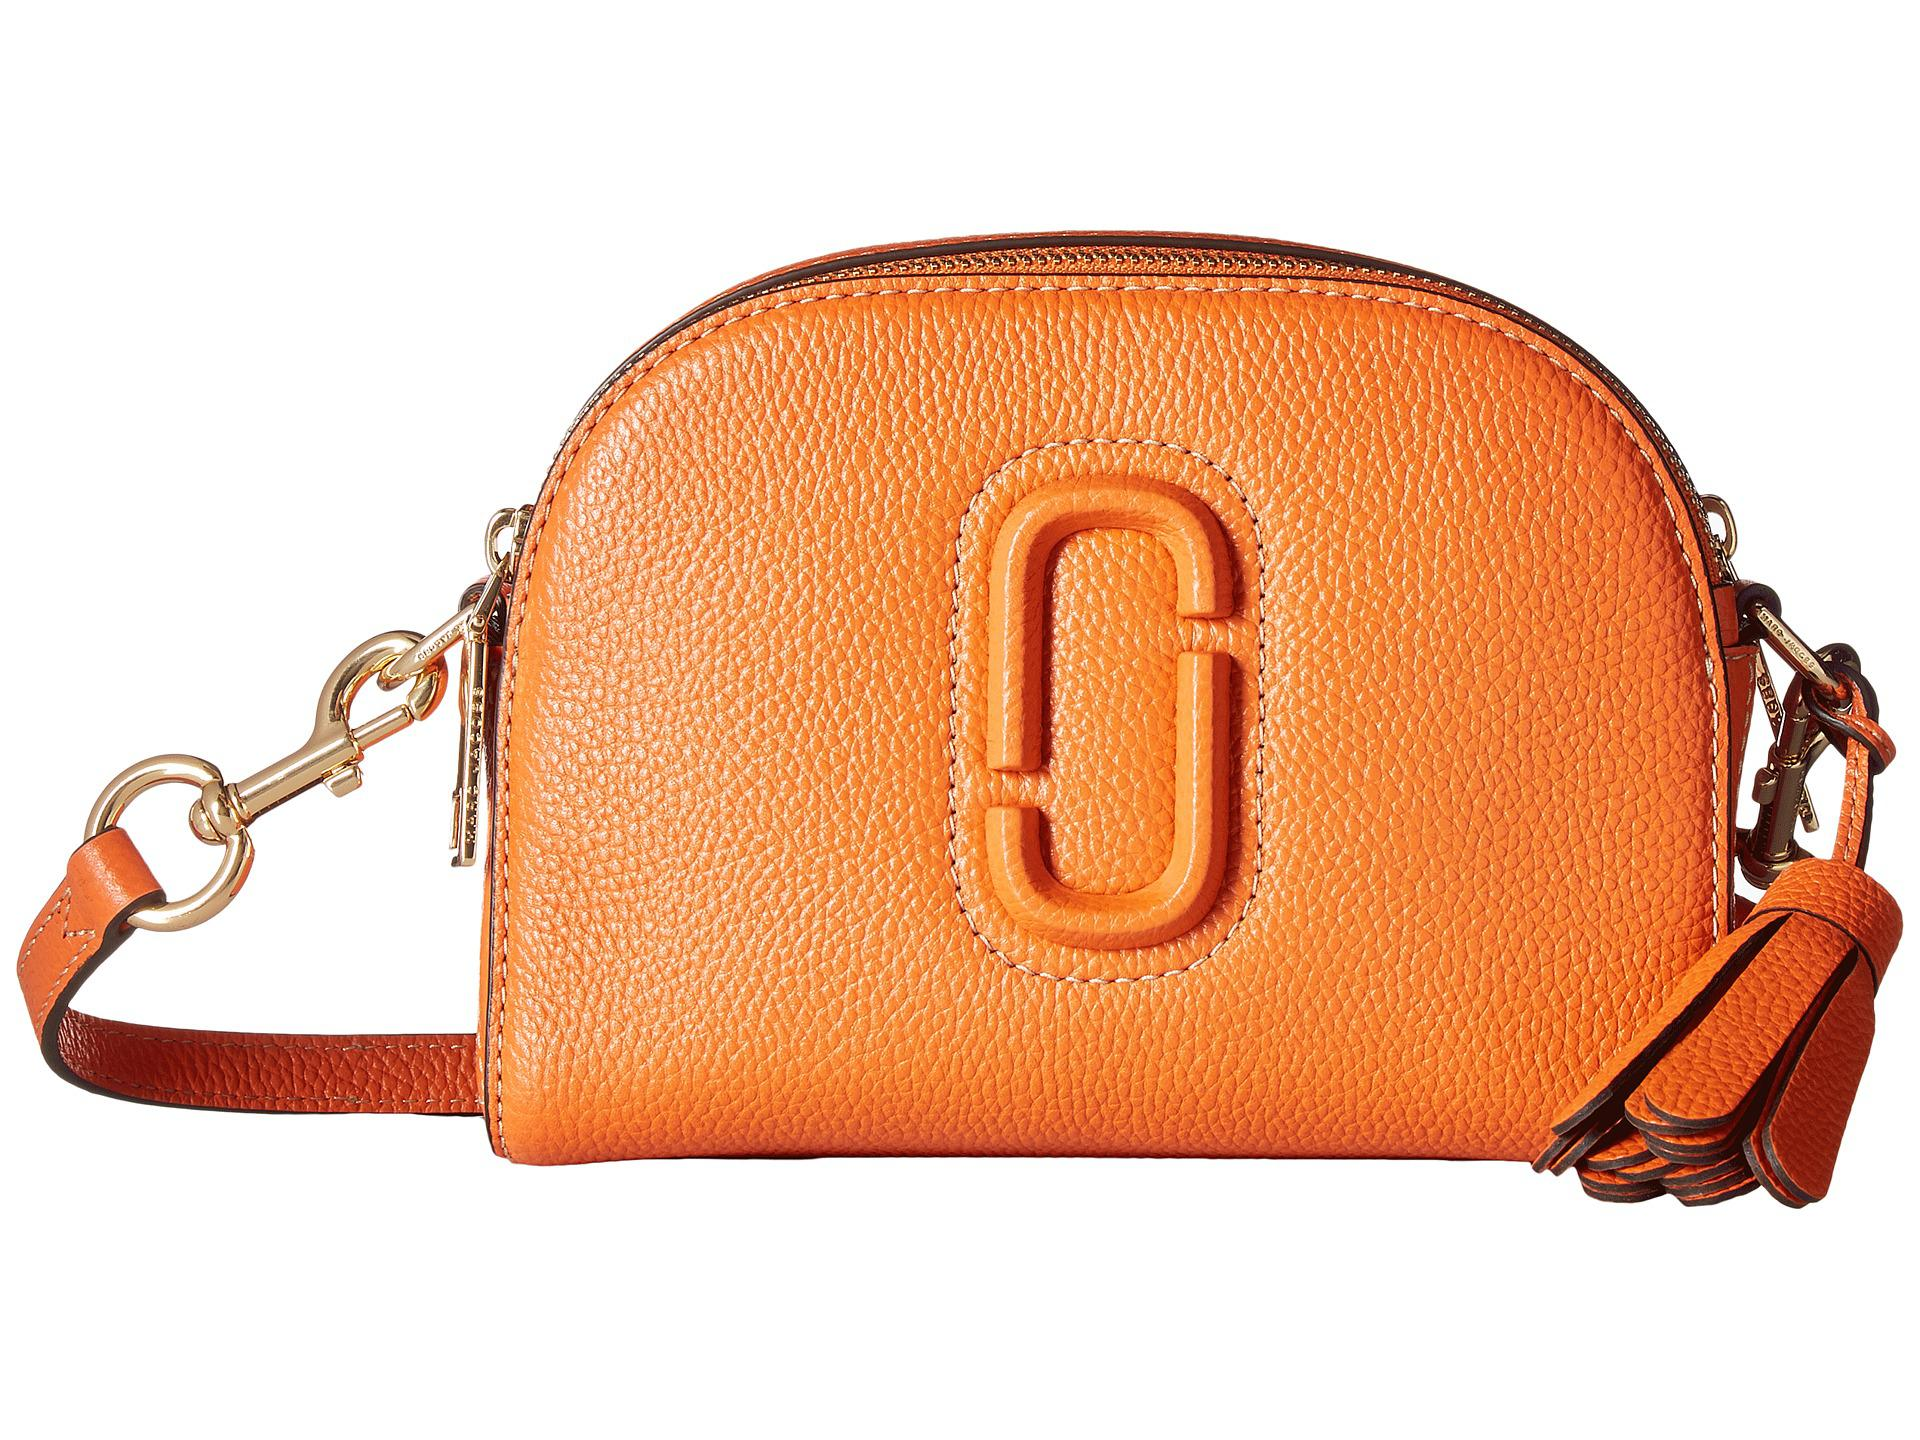 4cc3572e3 Marc Jacobs Shutter Small Camera Bag in Orange - Lyst